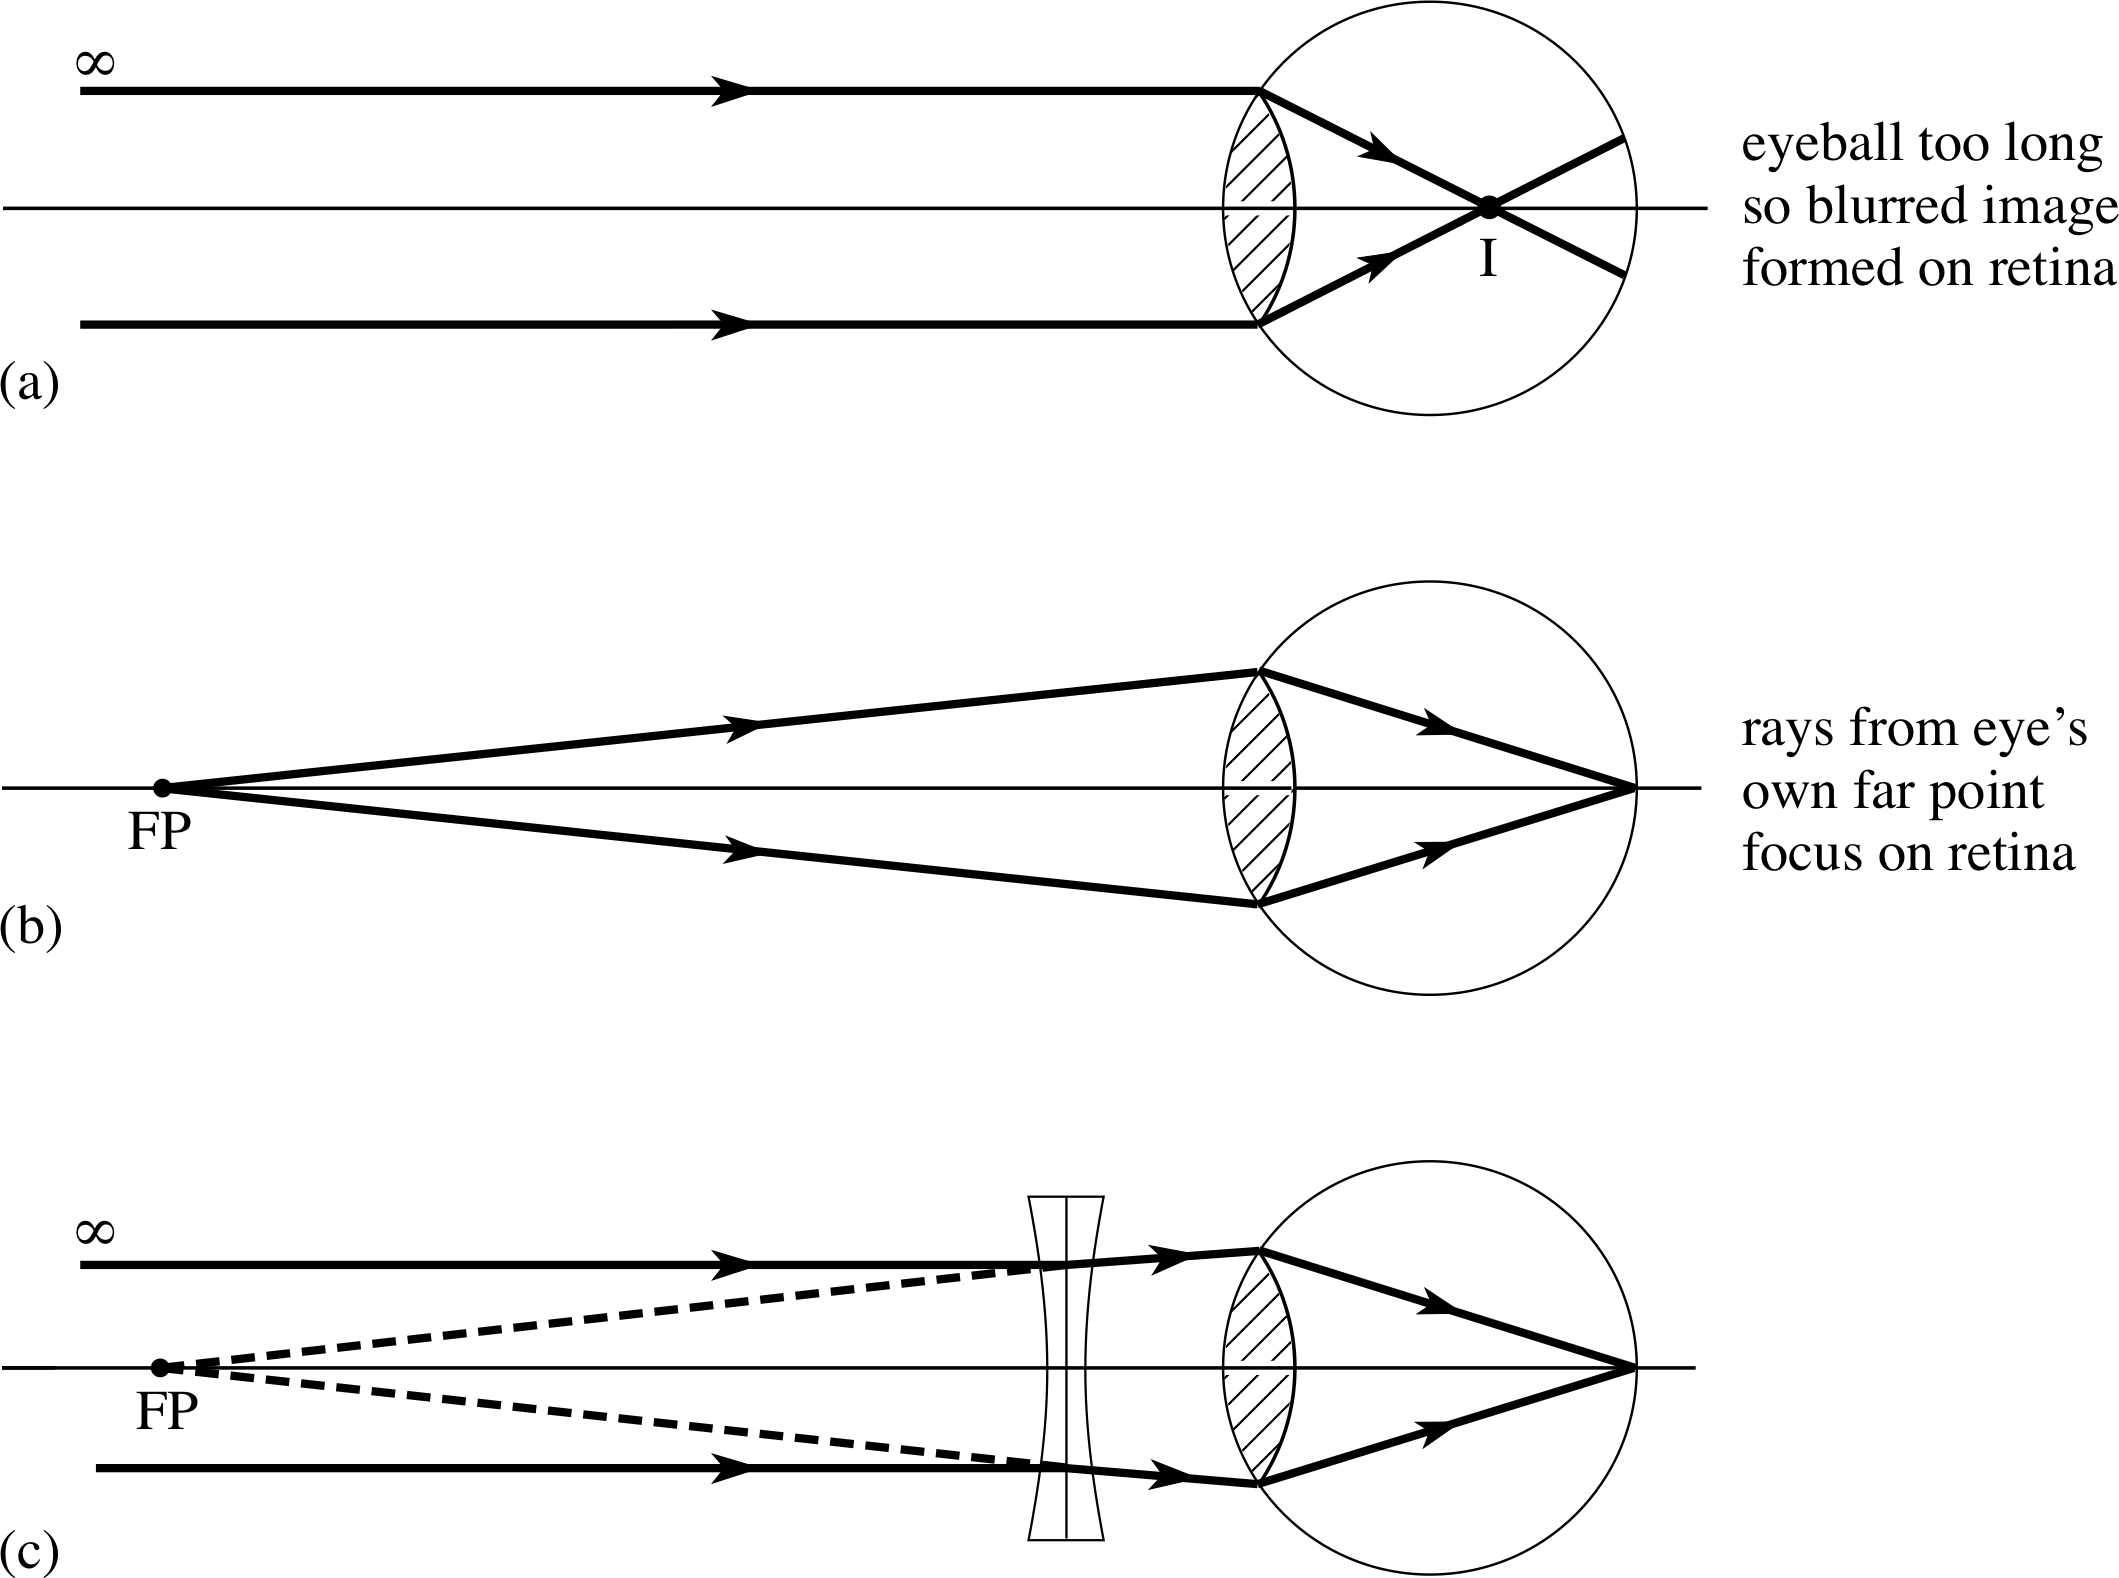 30 Draw The Ray Diagram For Nearsighted People